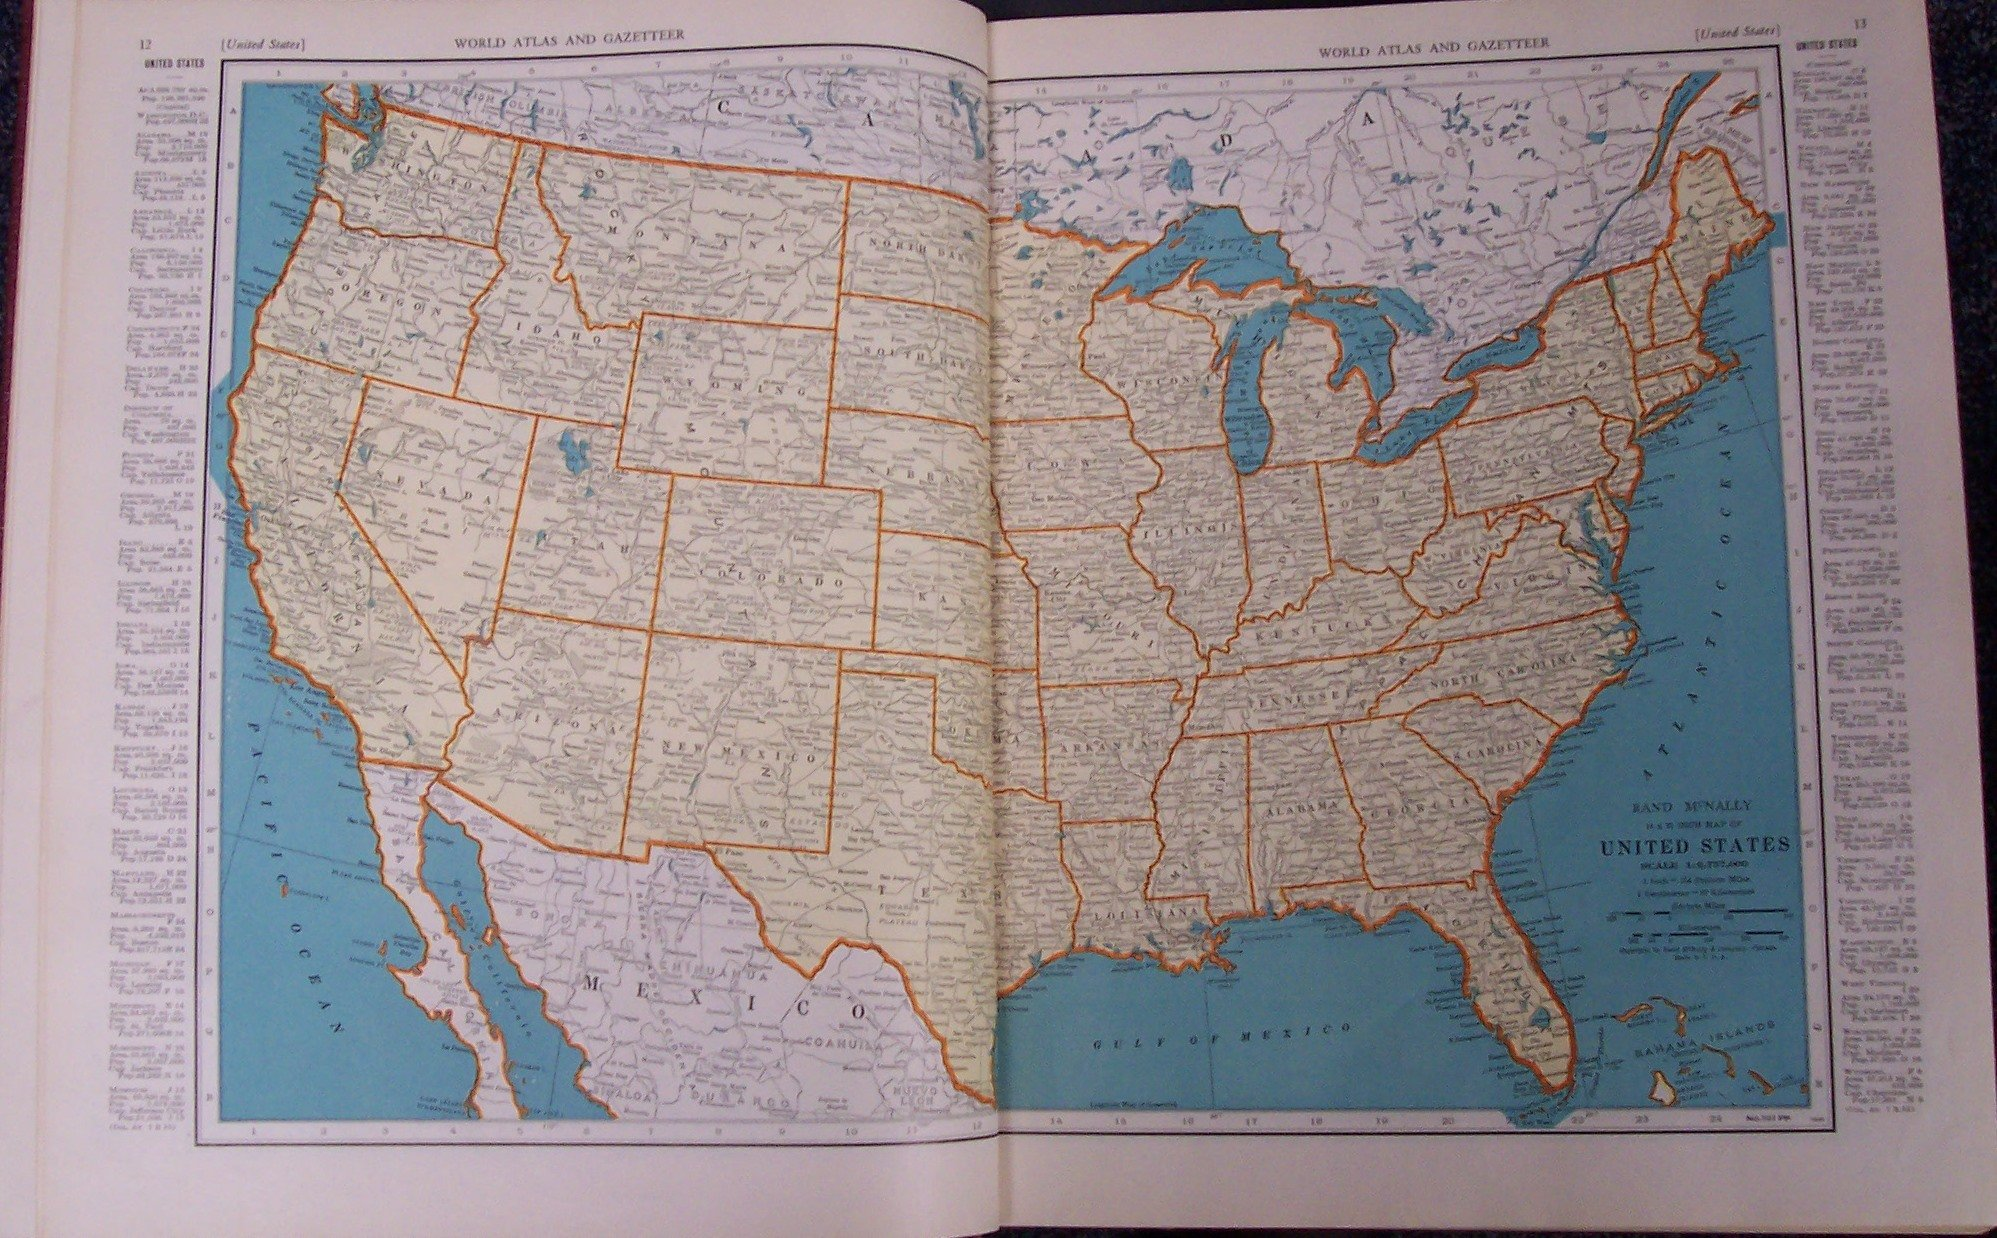 Colliers world atlas and gazetteer 1937 colliers amazon books gumiabroncs Choice Image